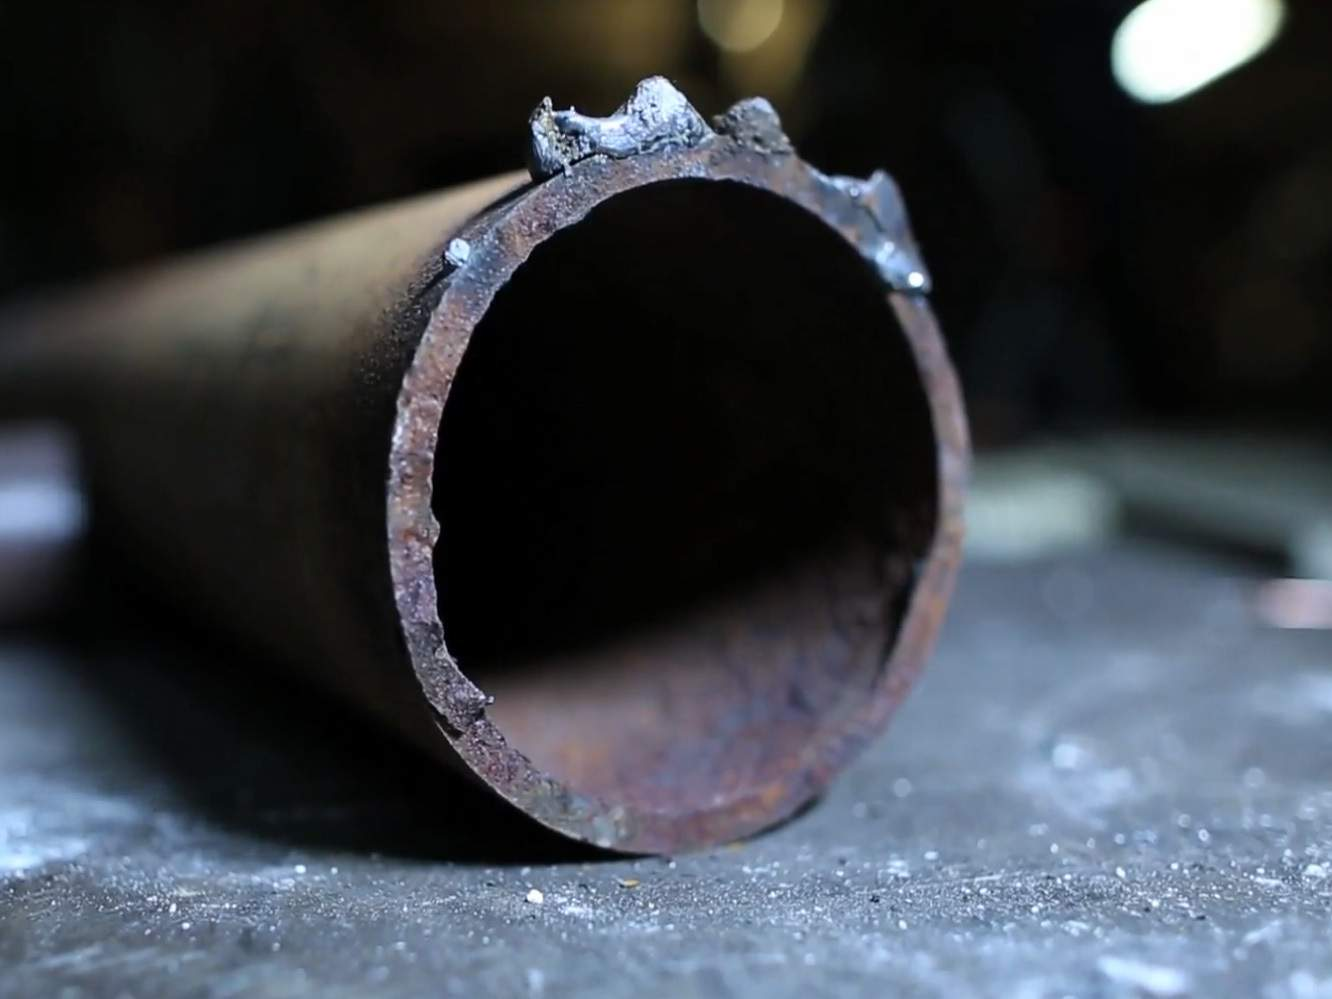 A Hack For Cutting Pipes Perfectly [Video]